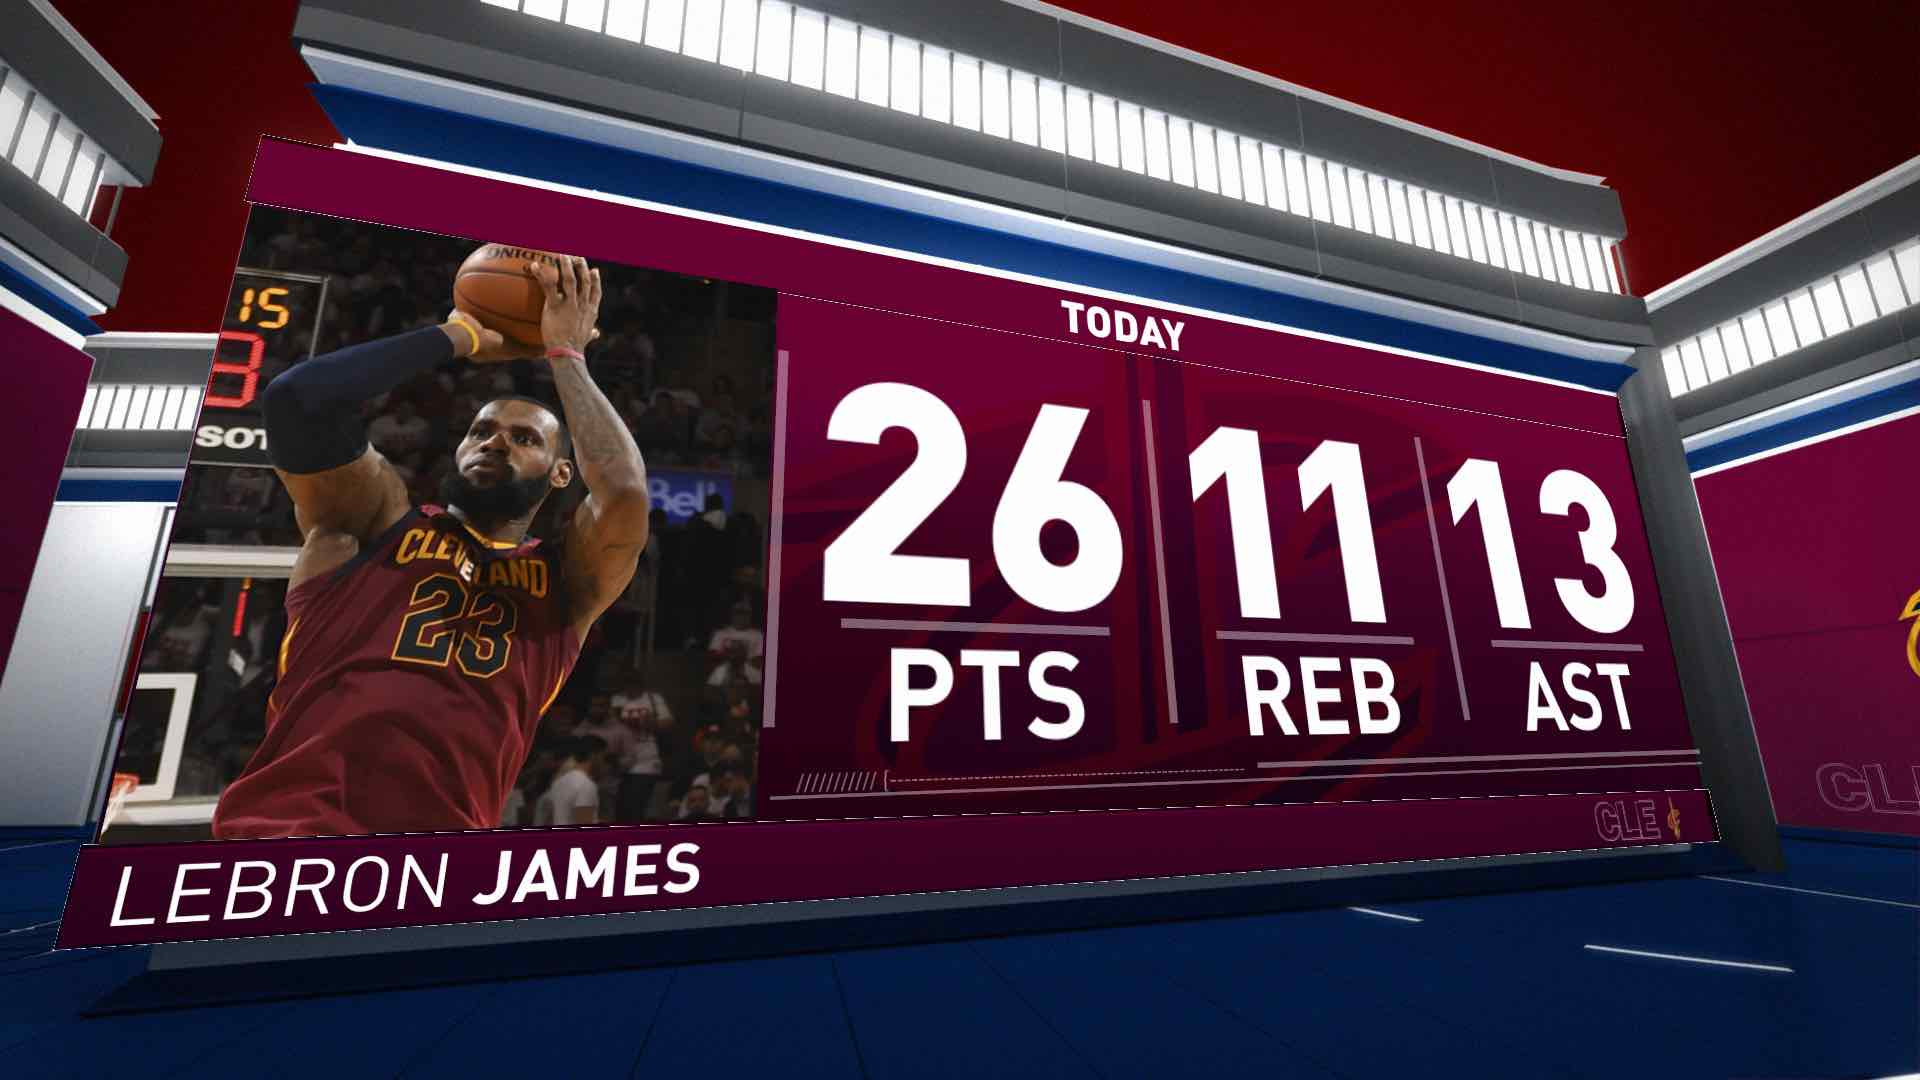 LeBron James Posts 26 points, 13 assists & 11 rebounds vs. Toronto Raptors